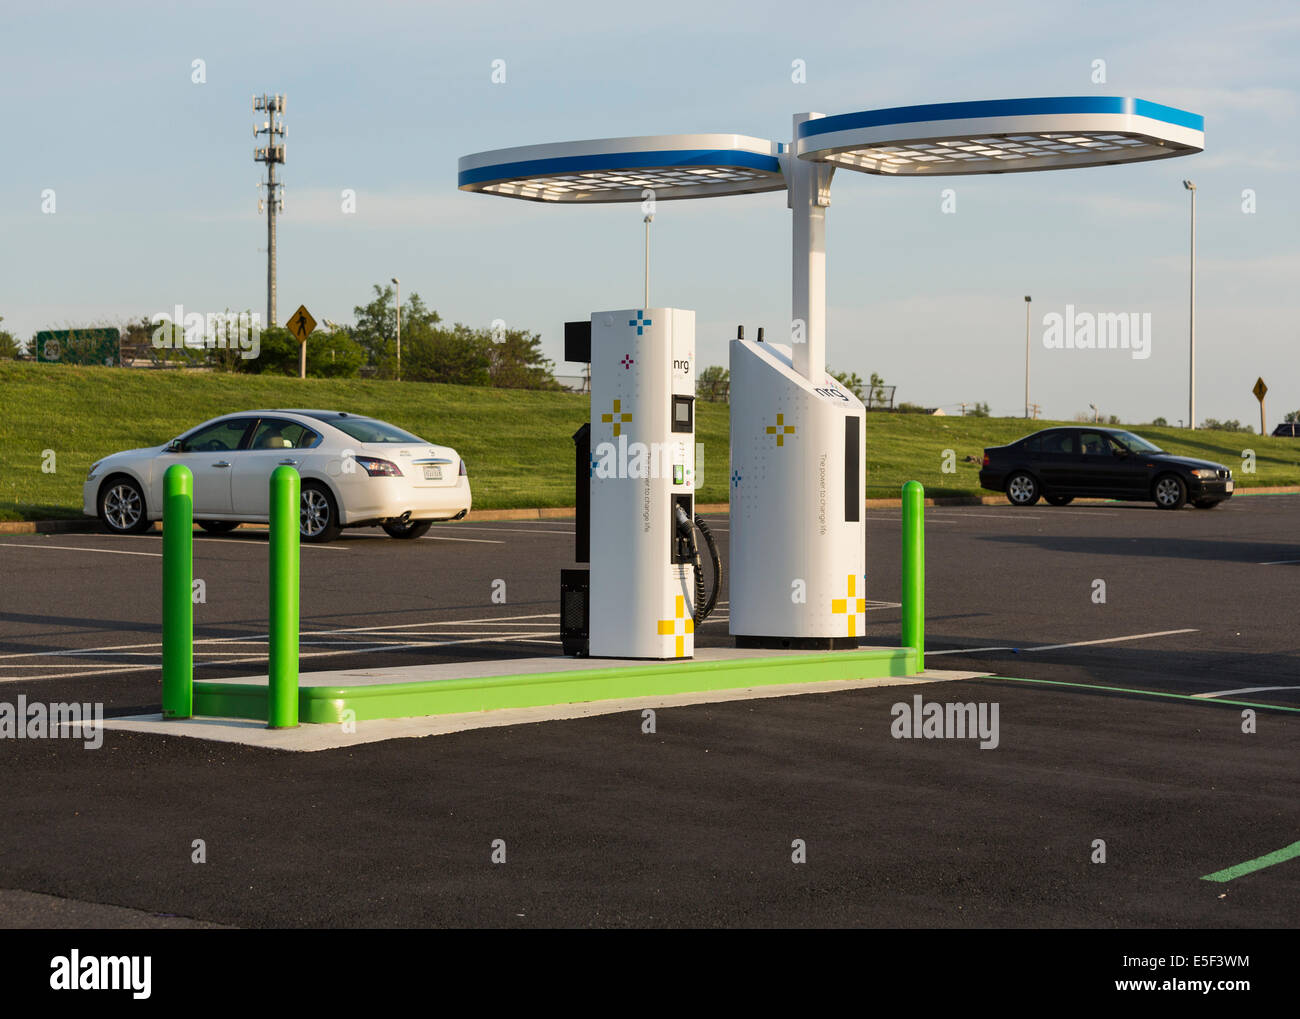 Electric car charging station and parking lot in USA installed by NRG eVGO to recharge electric cars - Stock Image